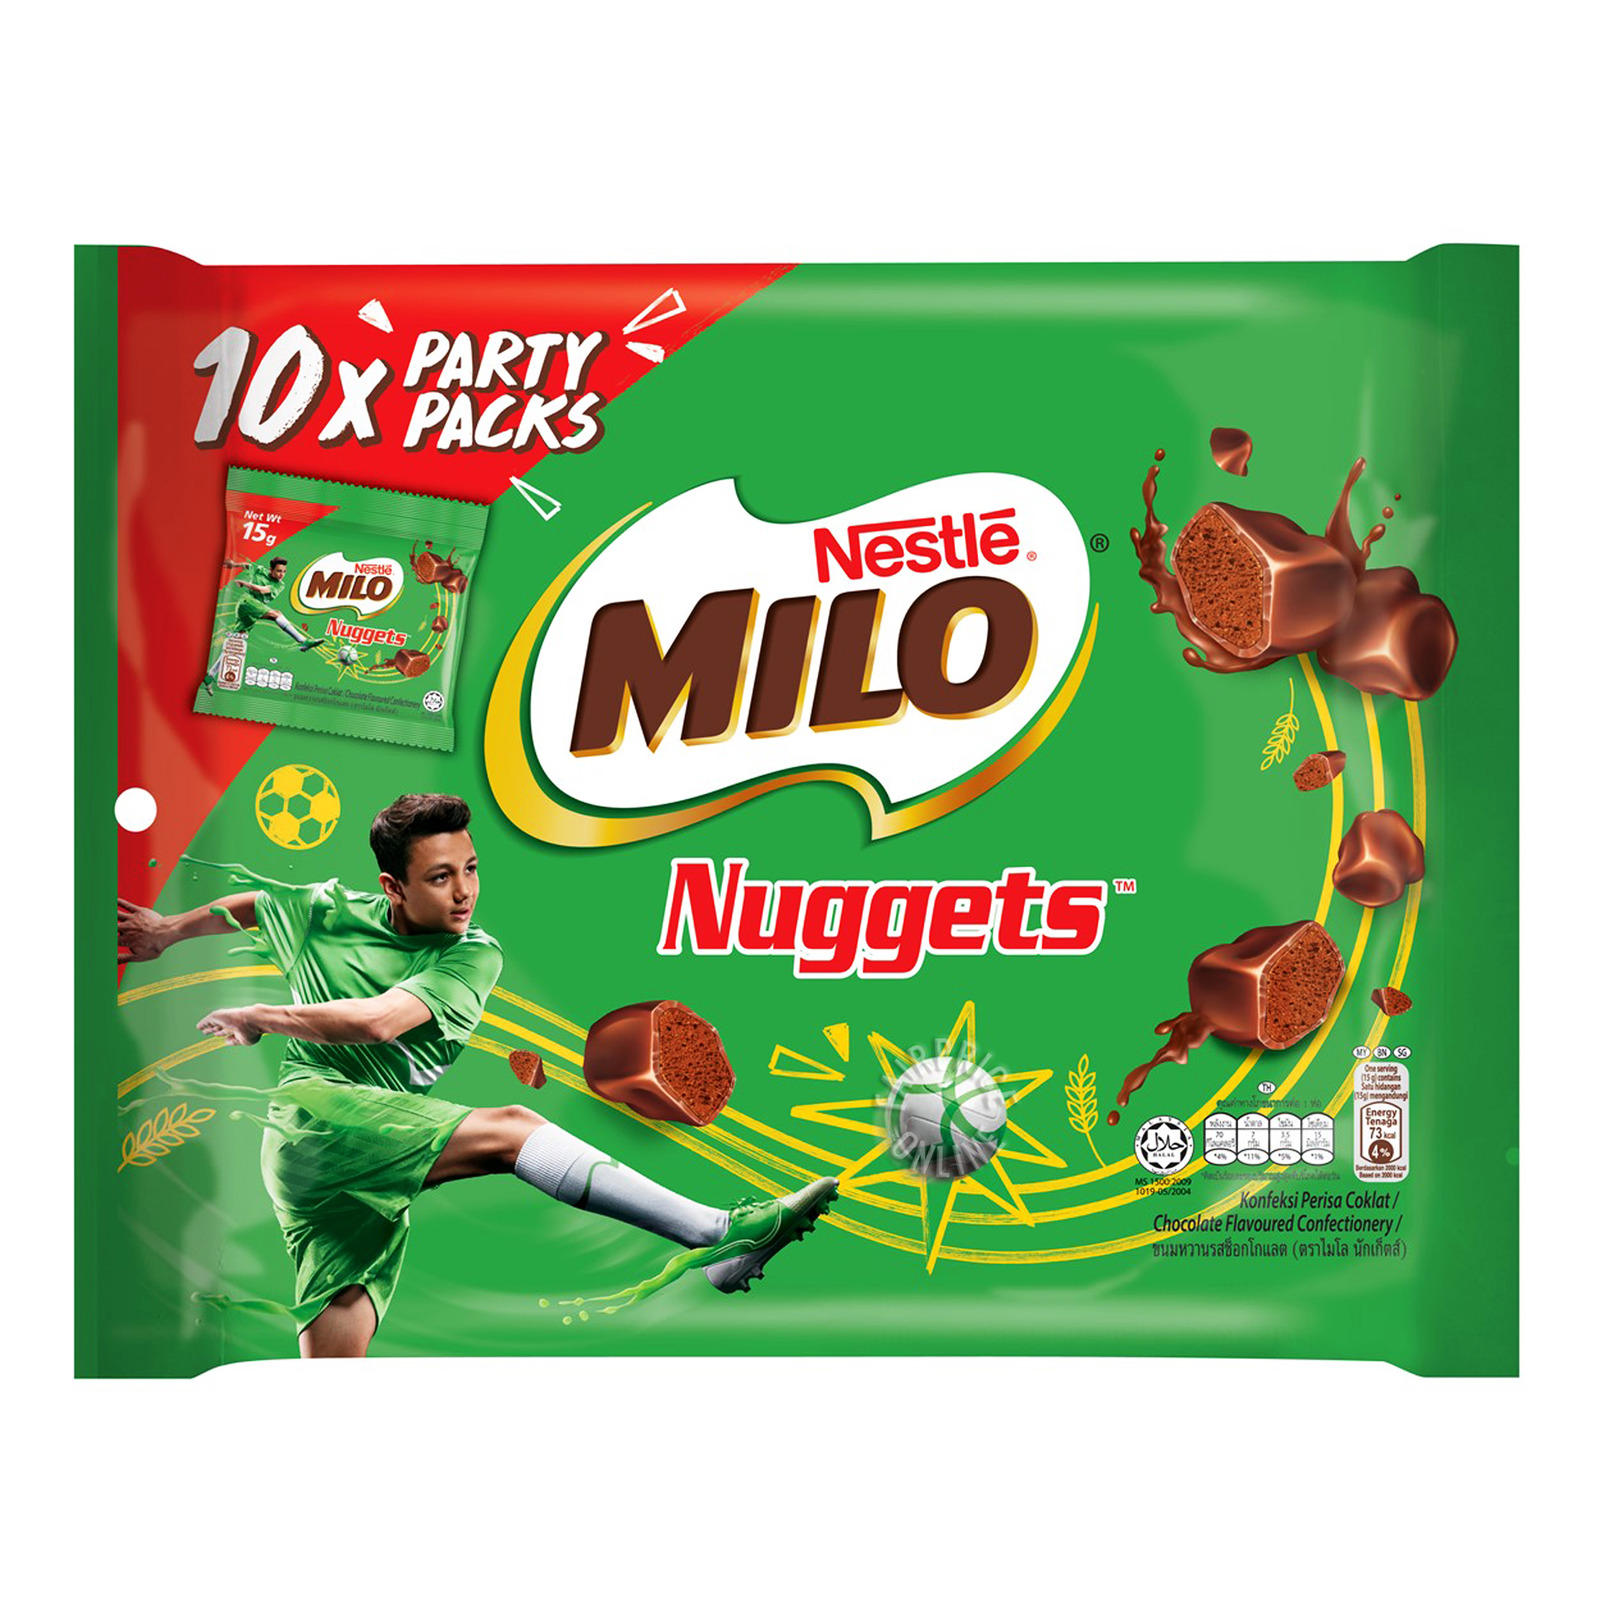 Nestle Milo Nuggets - Party Packs